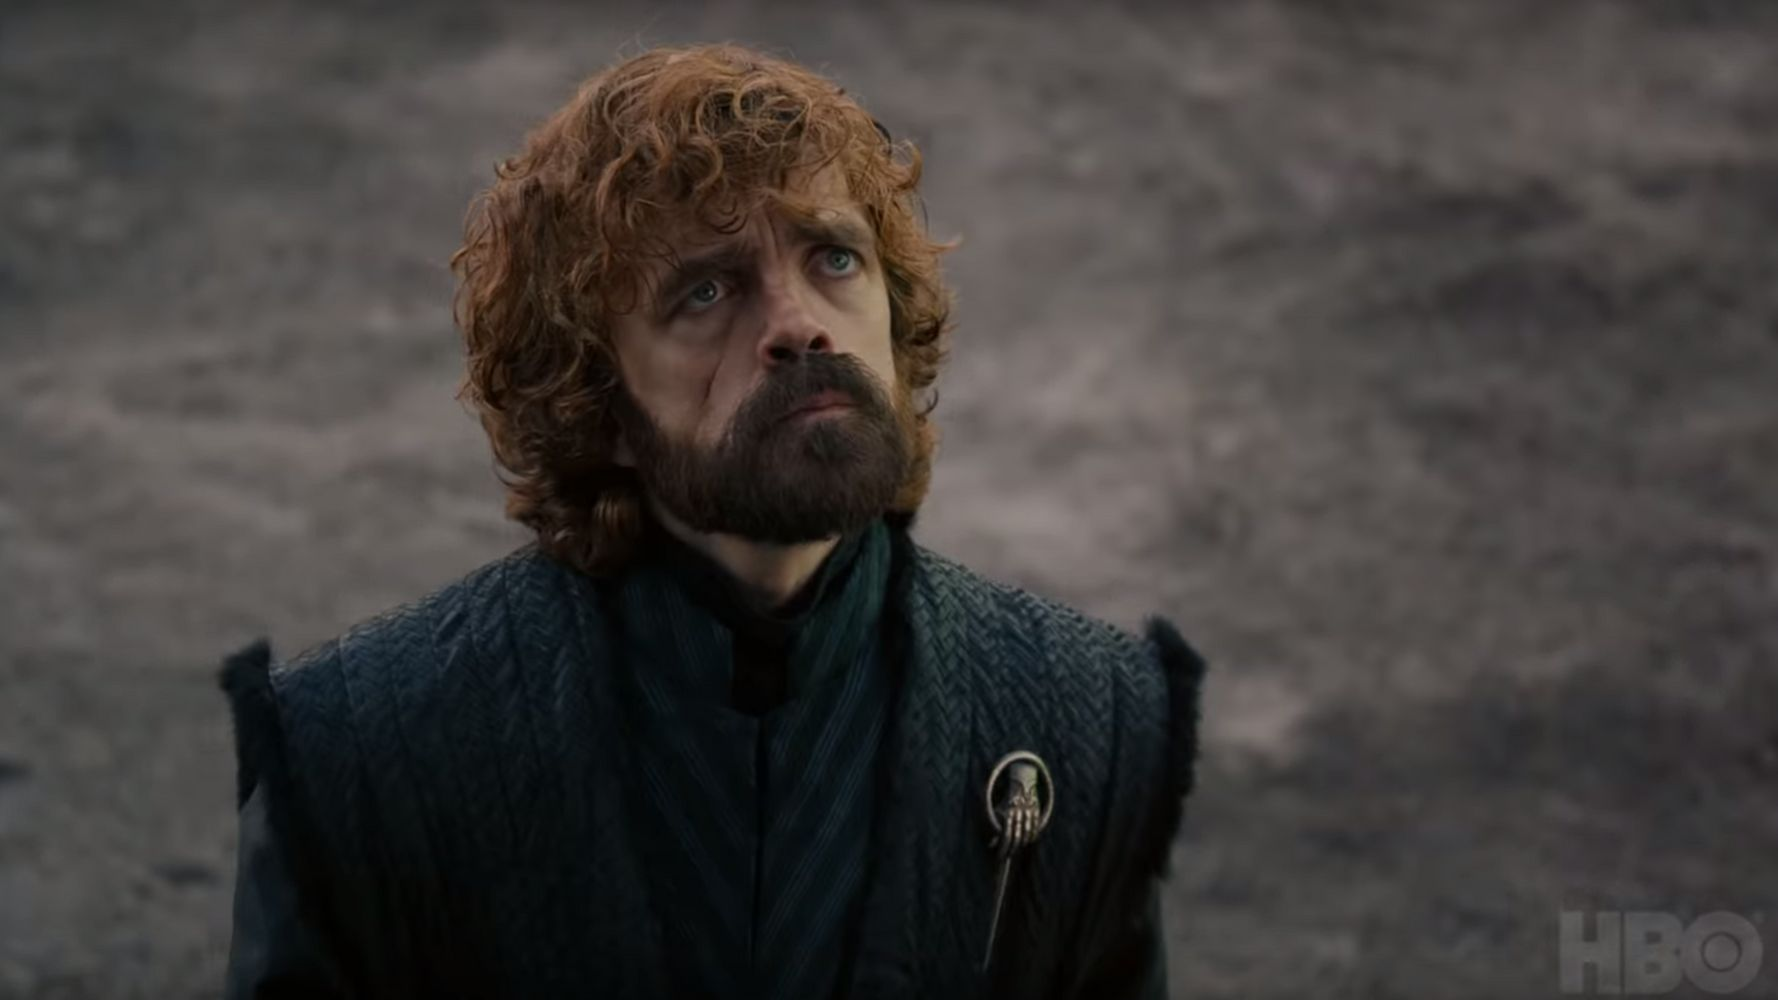 This Theory Explains Why Tyrion Looks Distressed In The New Trailer